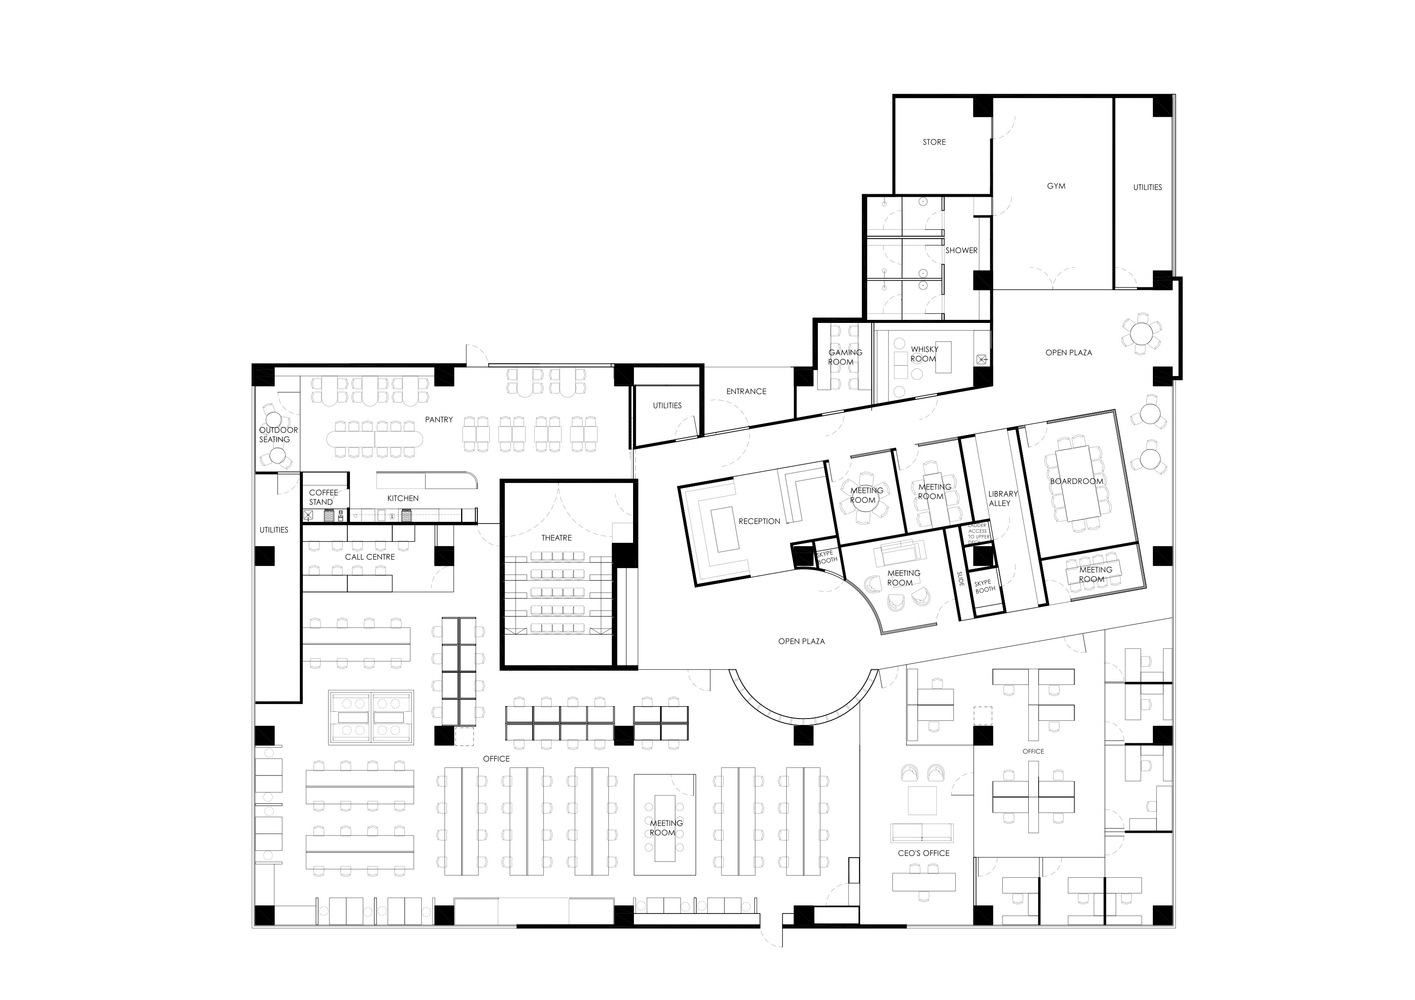 HONESTBEE_OFFICE_PLAN_150_WITH_ANNOTATIONS